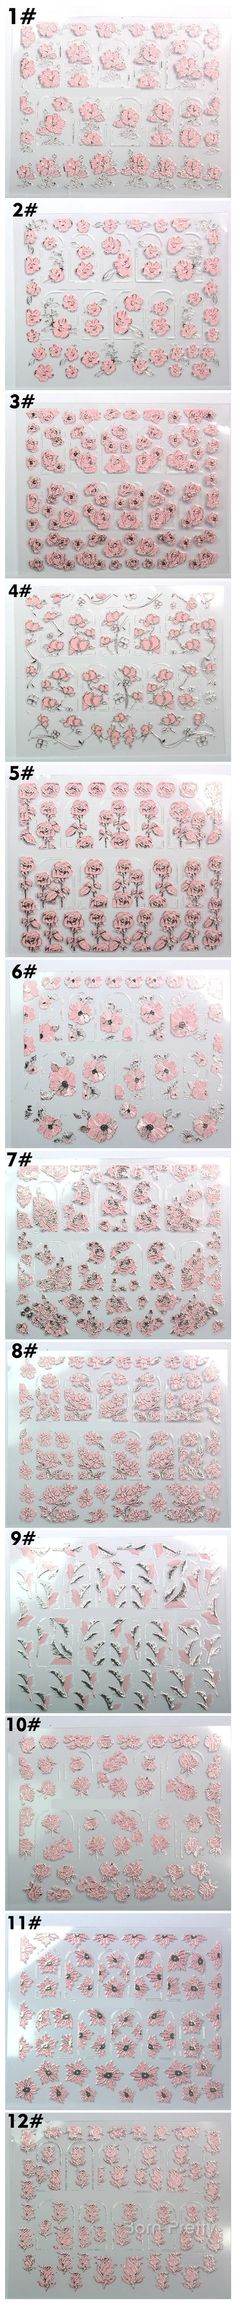 $2.33 1 Sheet Pink Flower 3D Nail Art Stickers Chic Floral Nail Tips Stamping Decals - BornPrettyStore.com